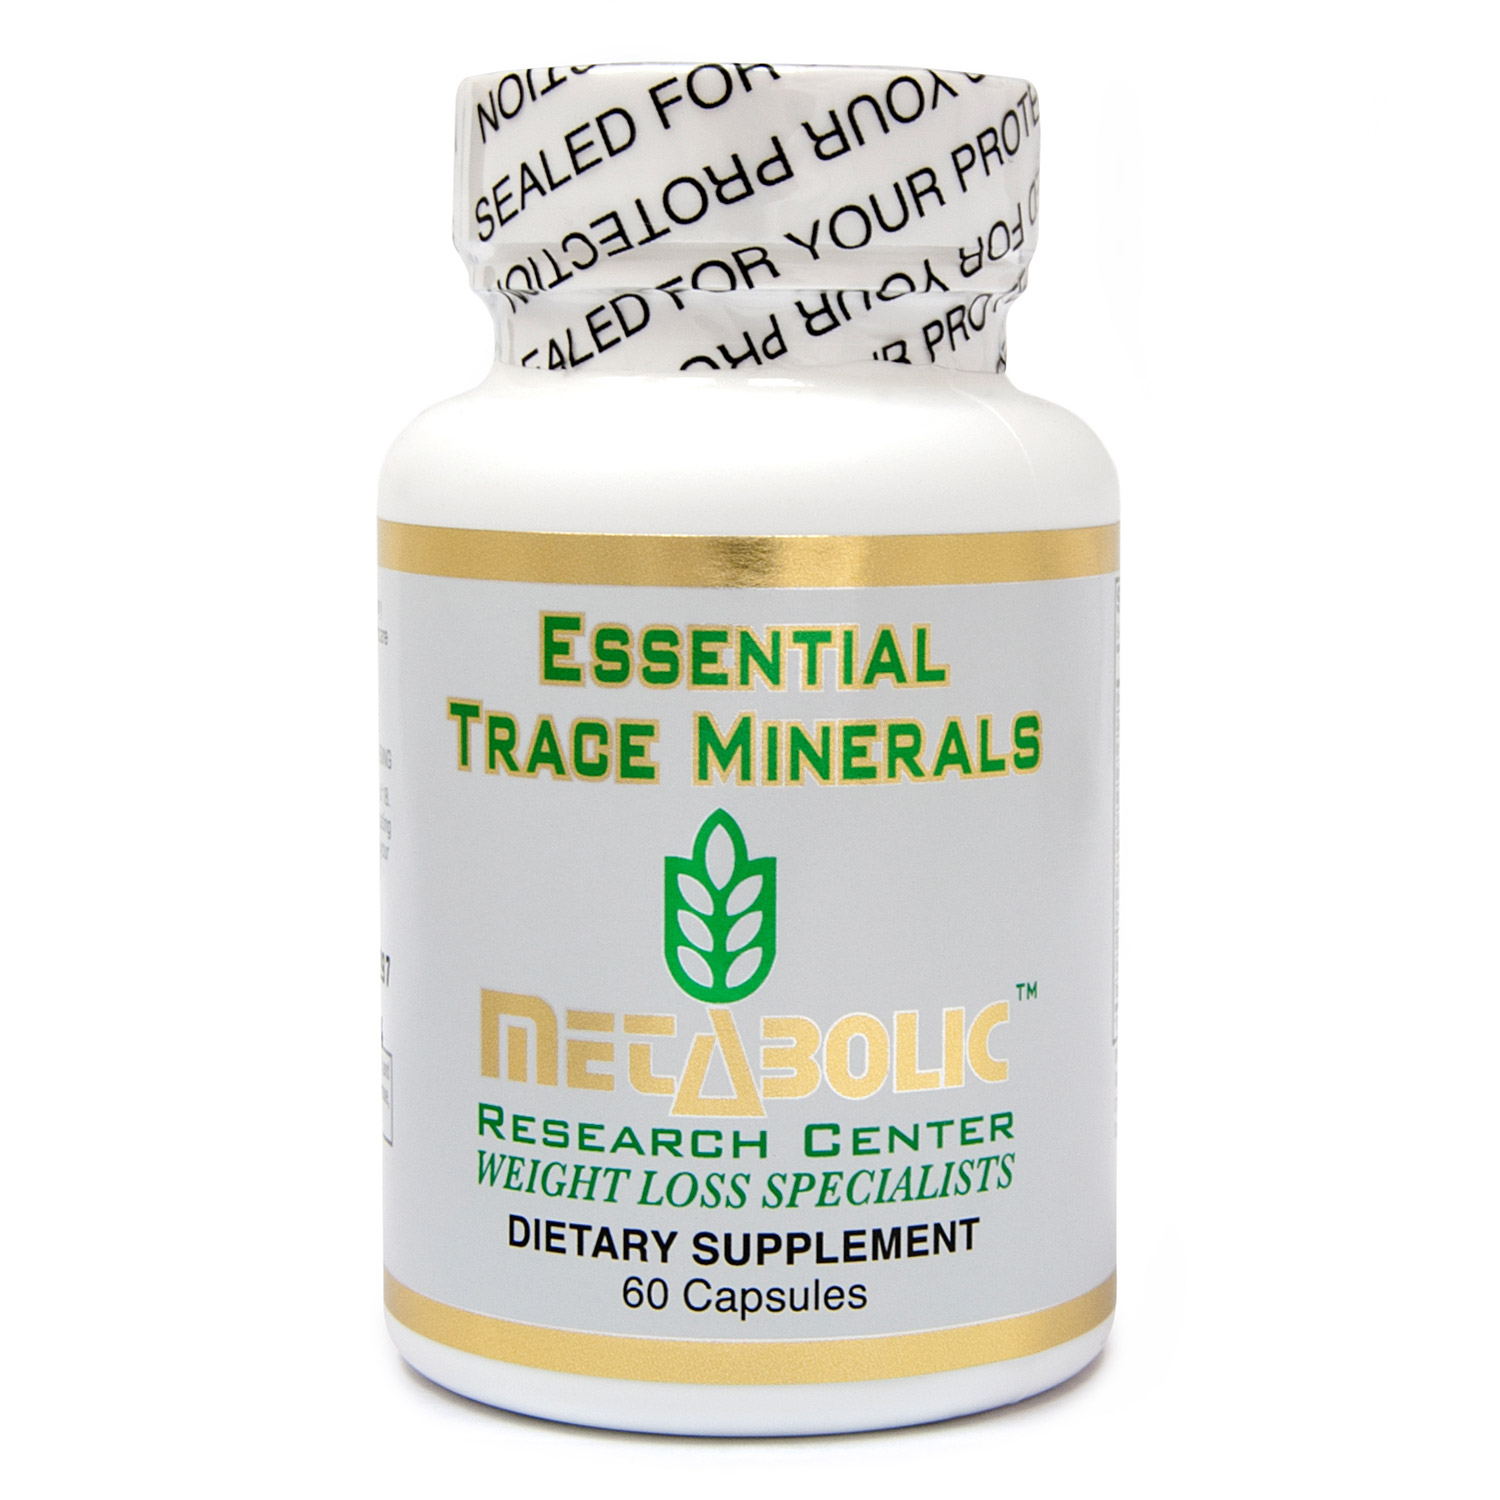 Metabolic Research Center Essential Trace Minerals - Dietary Supplement, 60 count